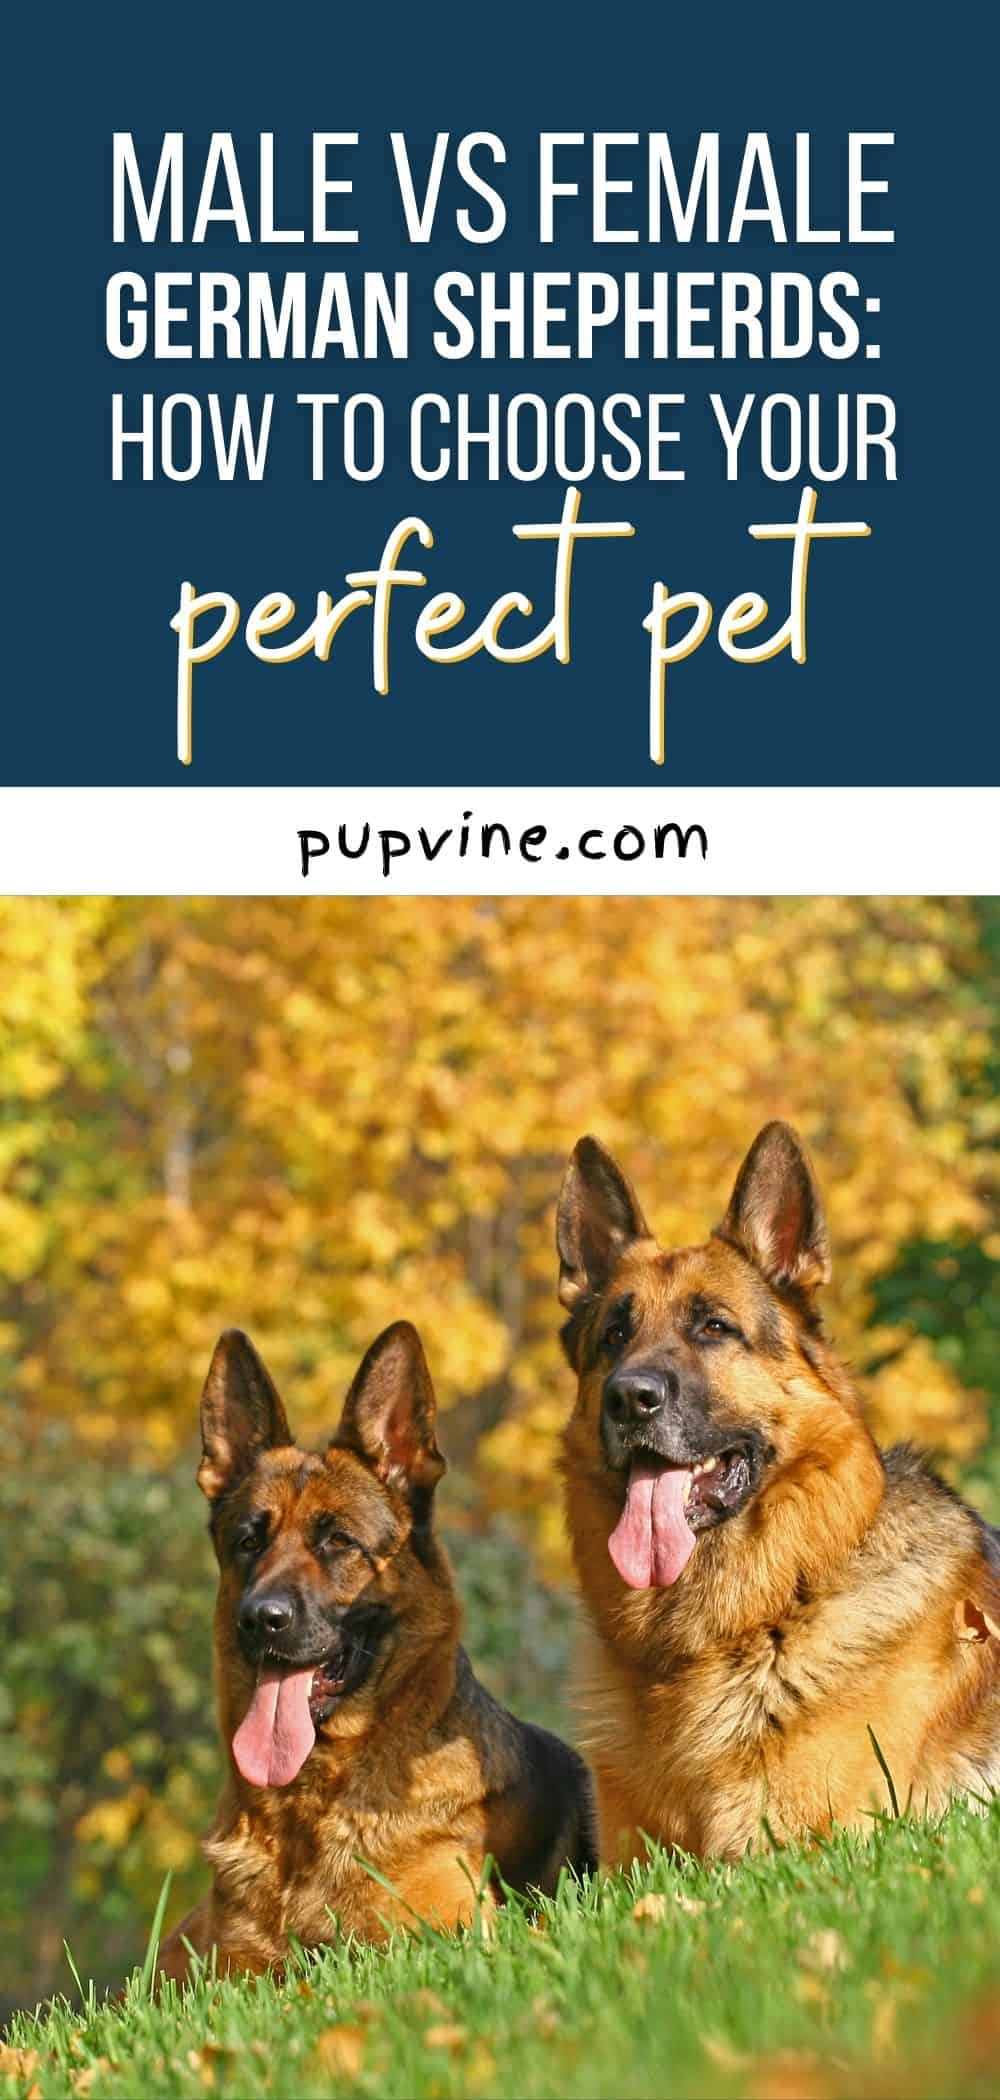 Male vs Female German Shepherds: How to Choose Your Perfect Pet